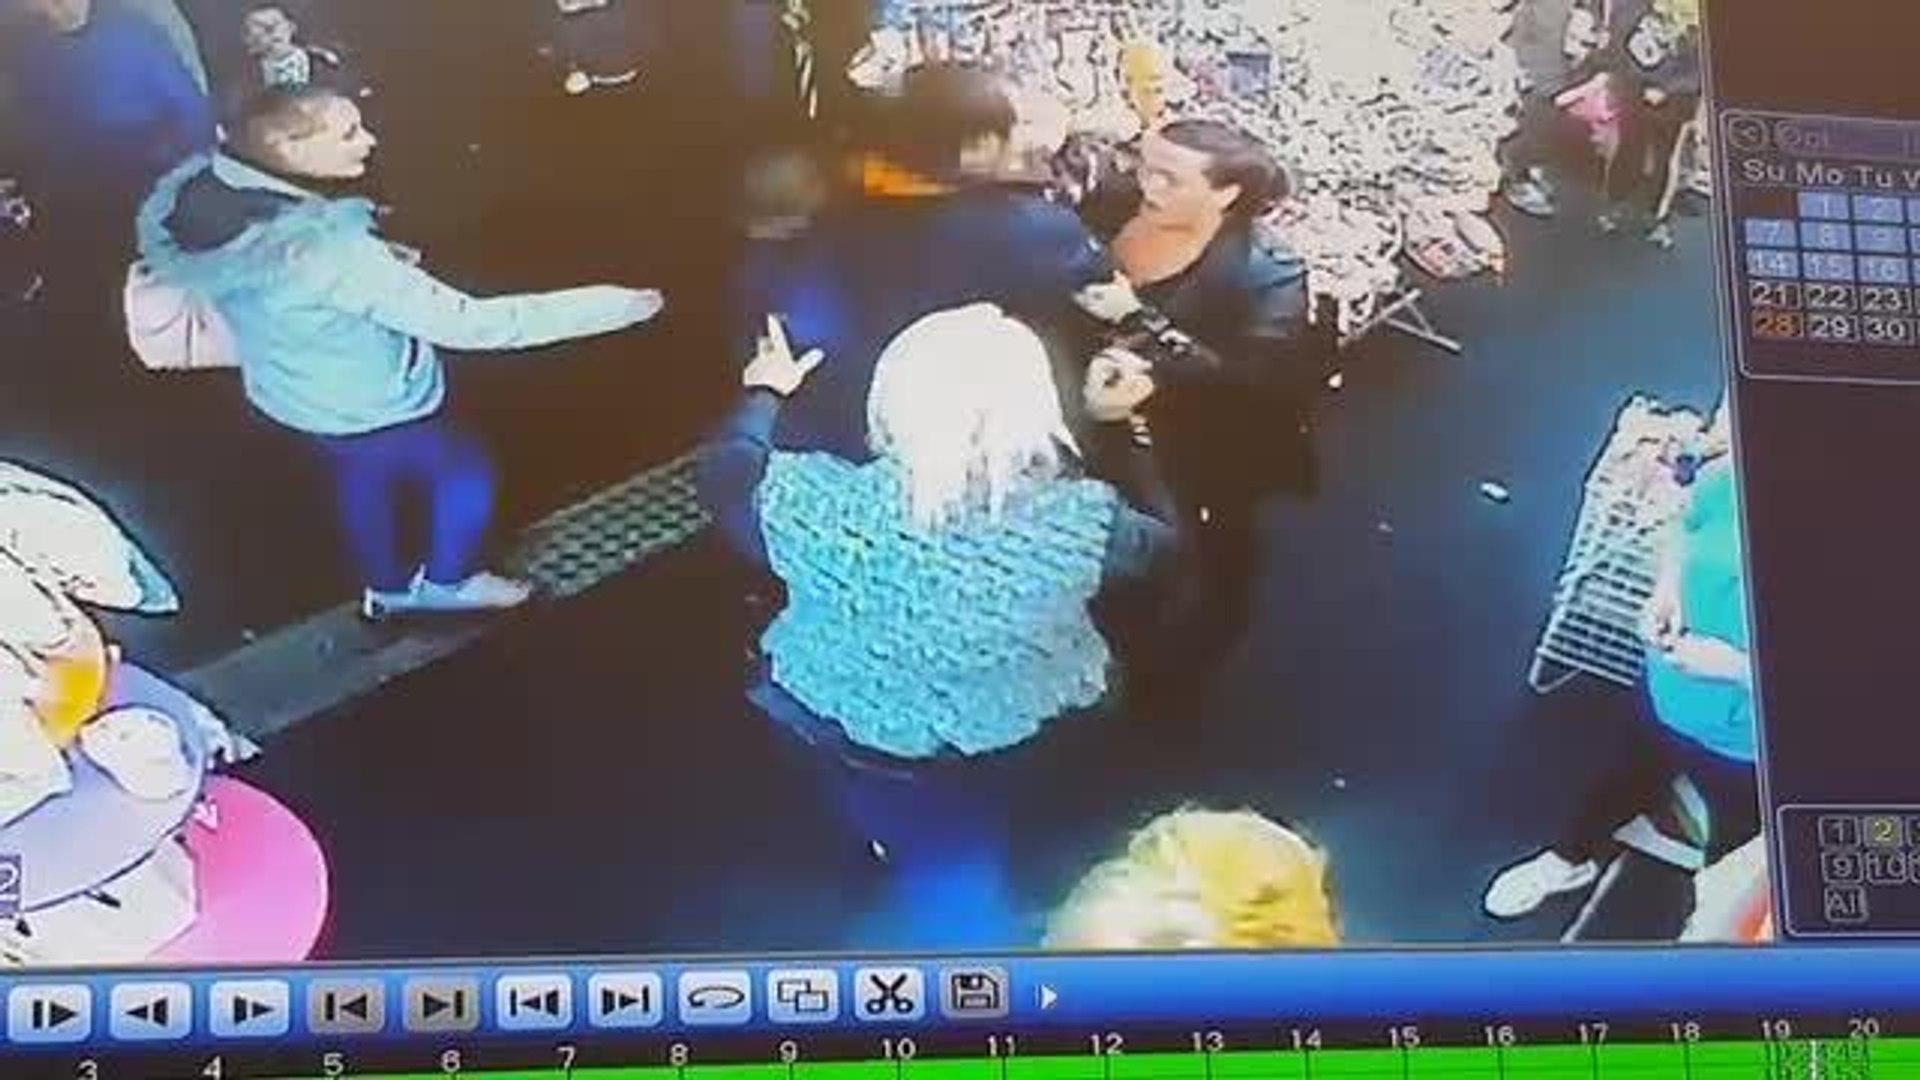 Video of assault at Spends